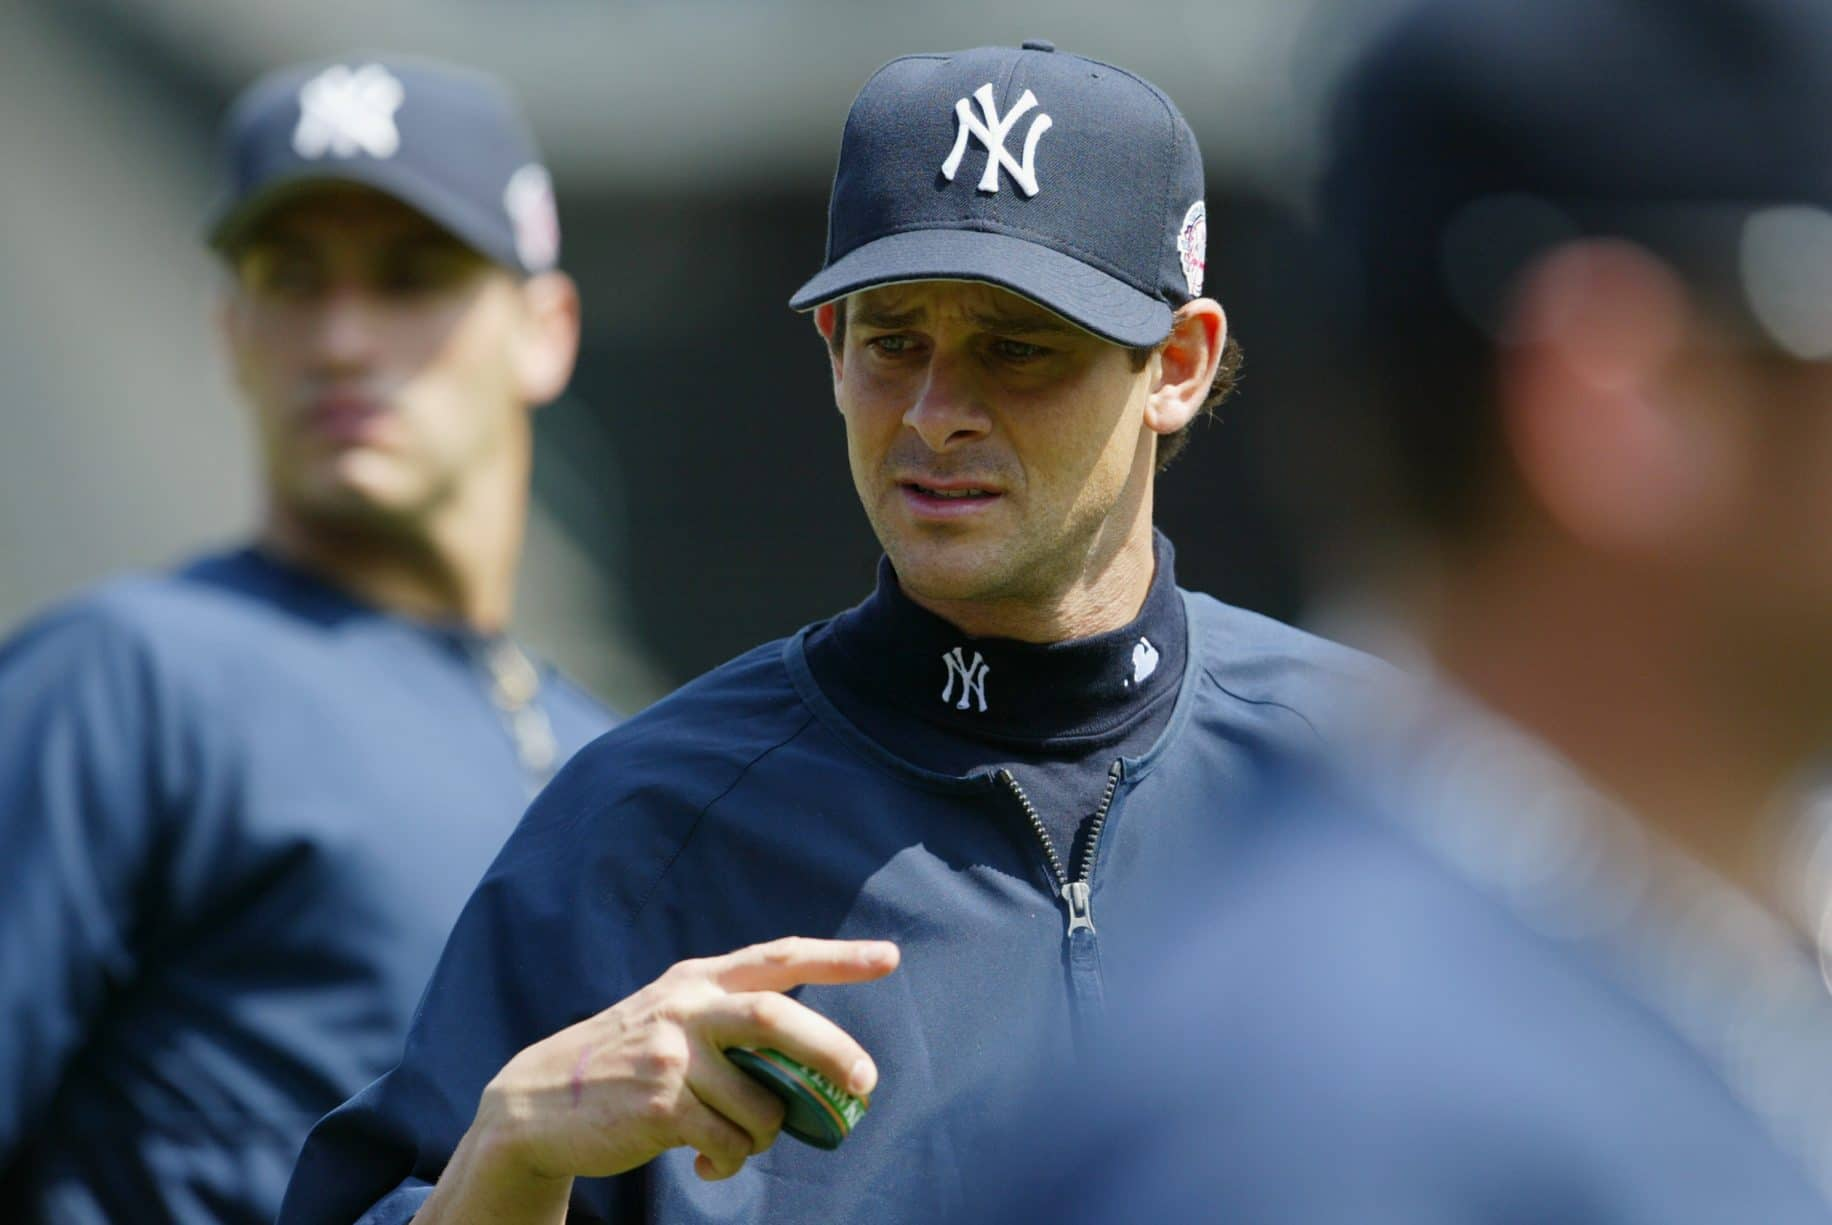 New York Yankees: Did Brian Cashman just get over on us again?